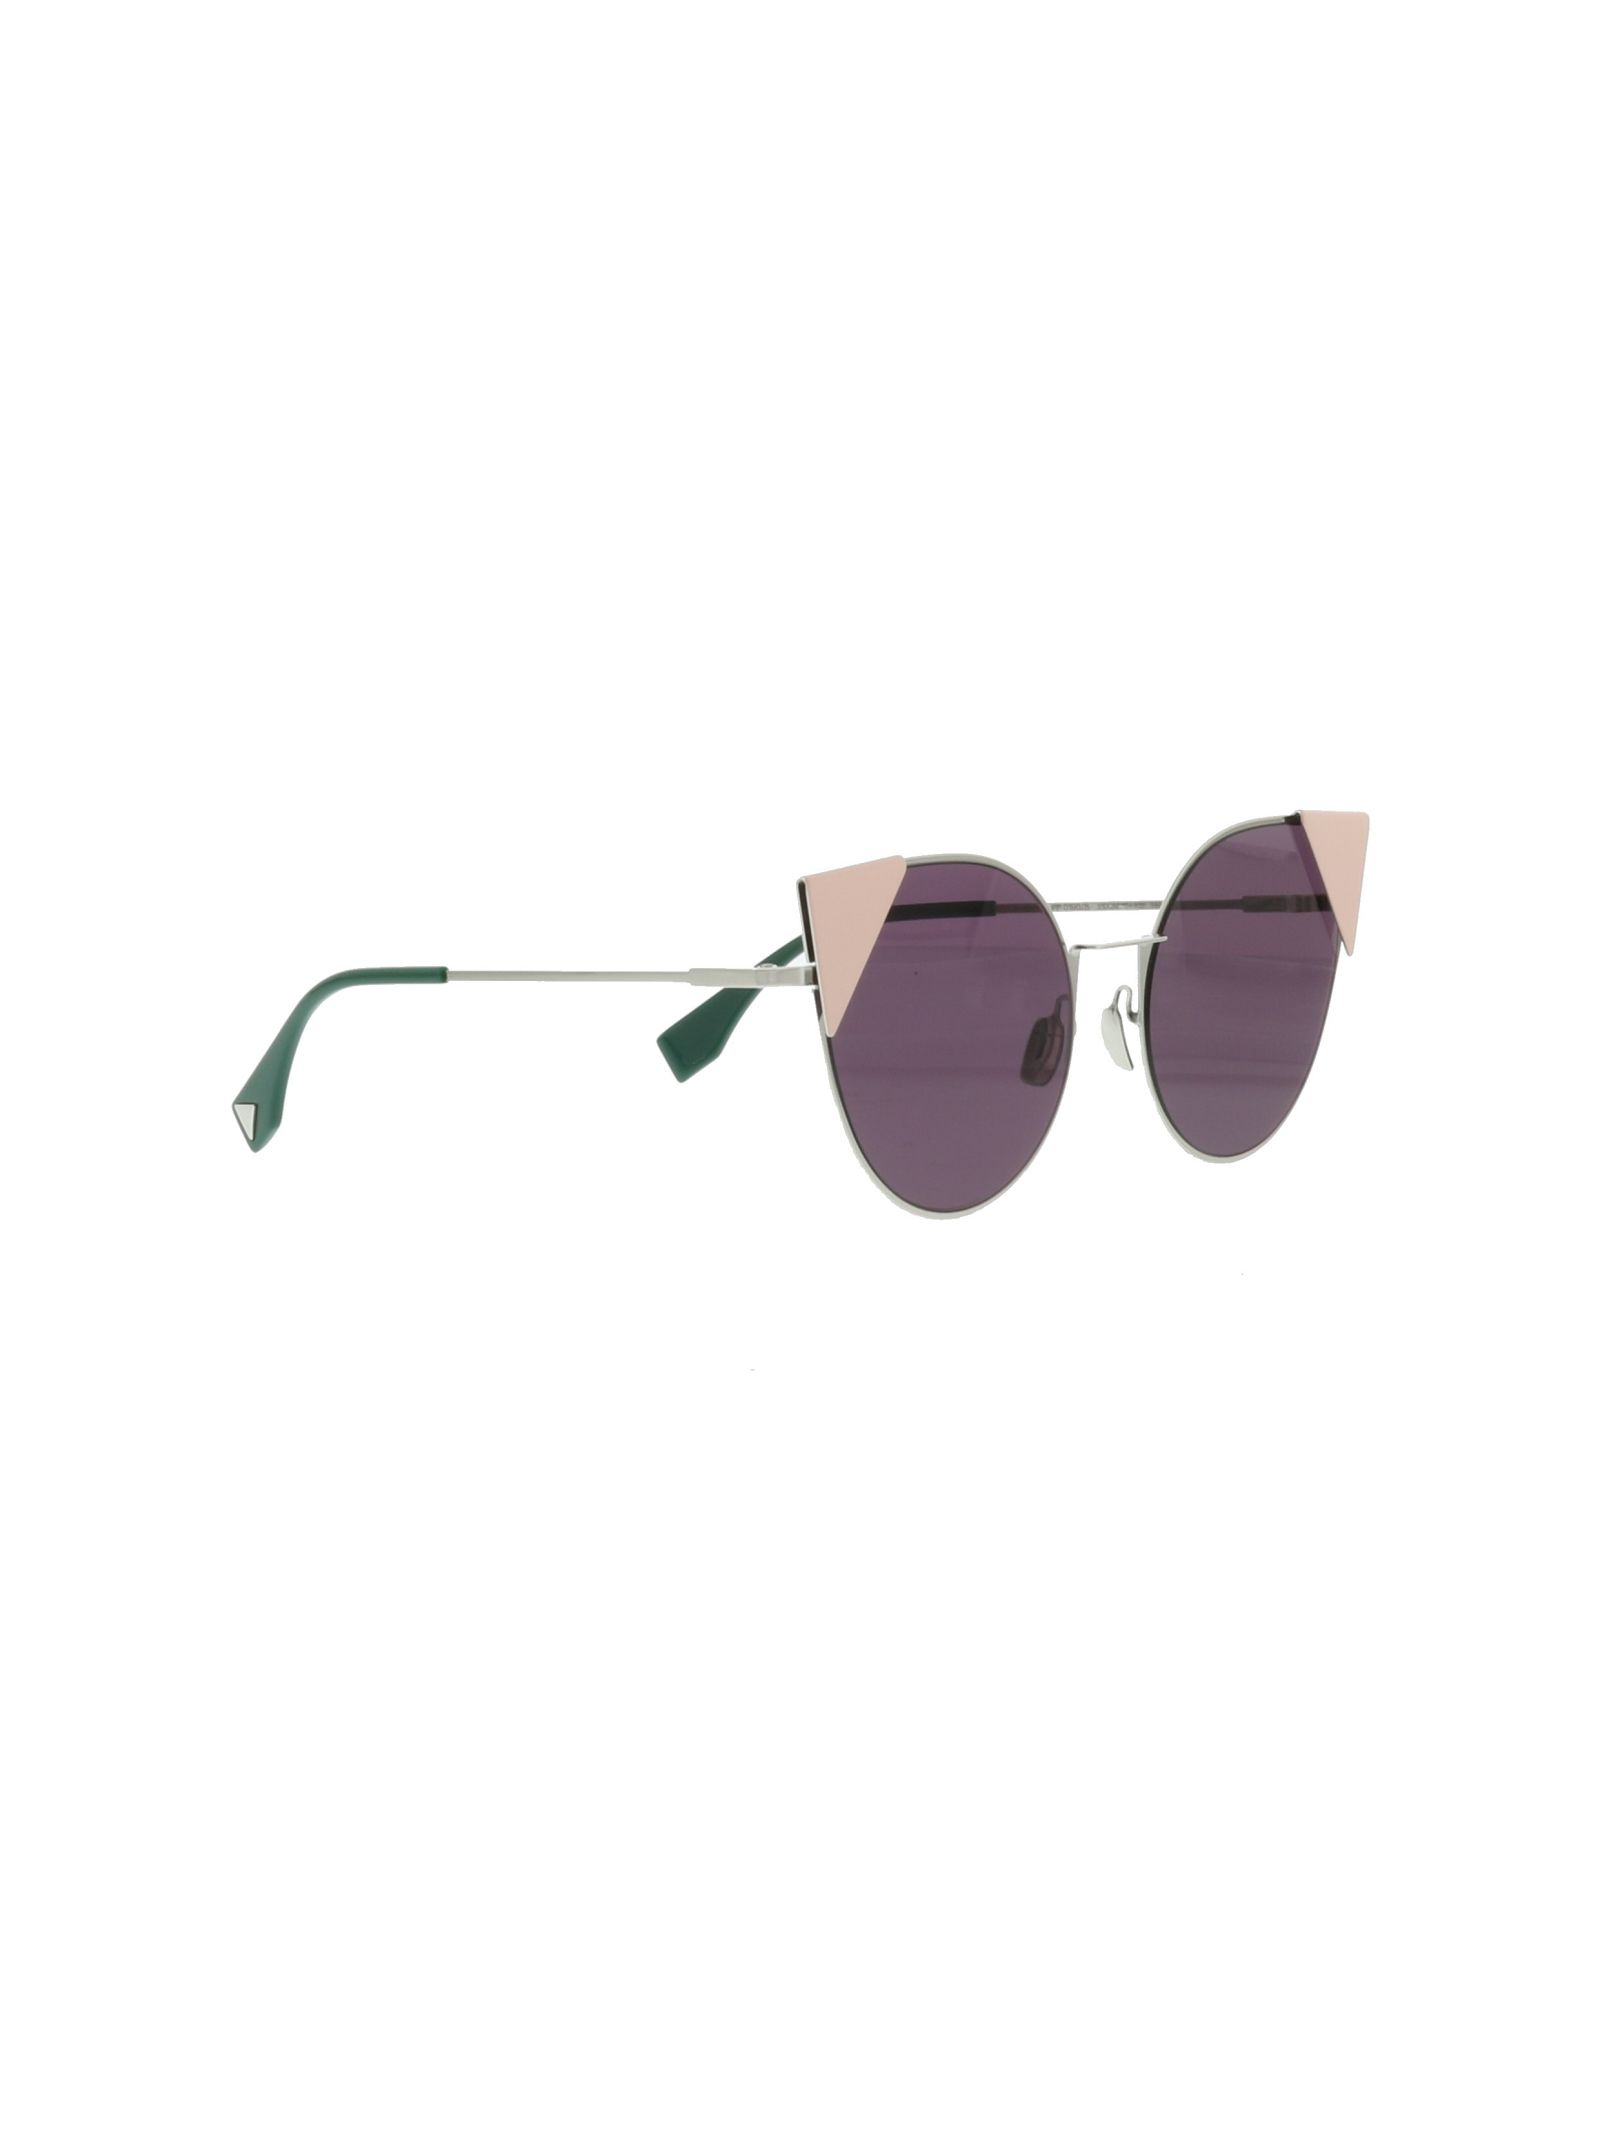 Fendi Sunglasses - Fendi - Andrea 2